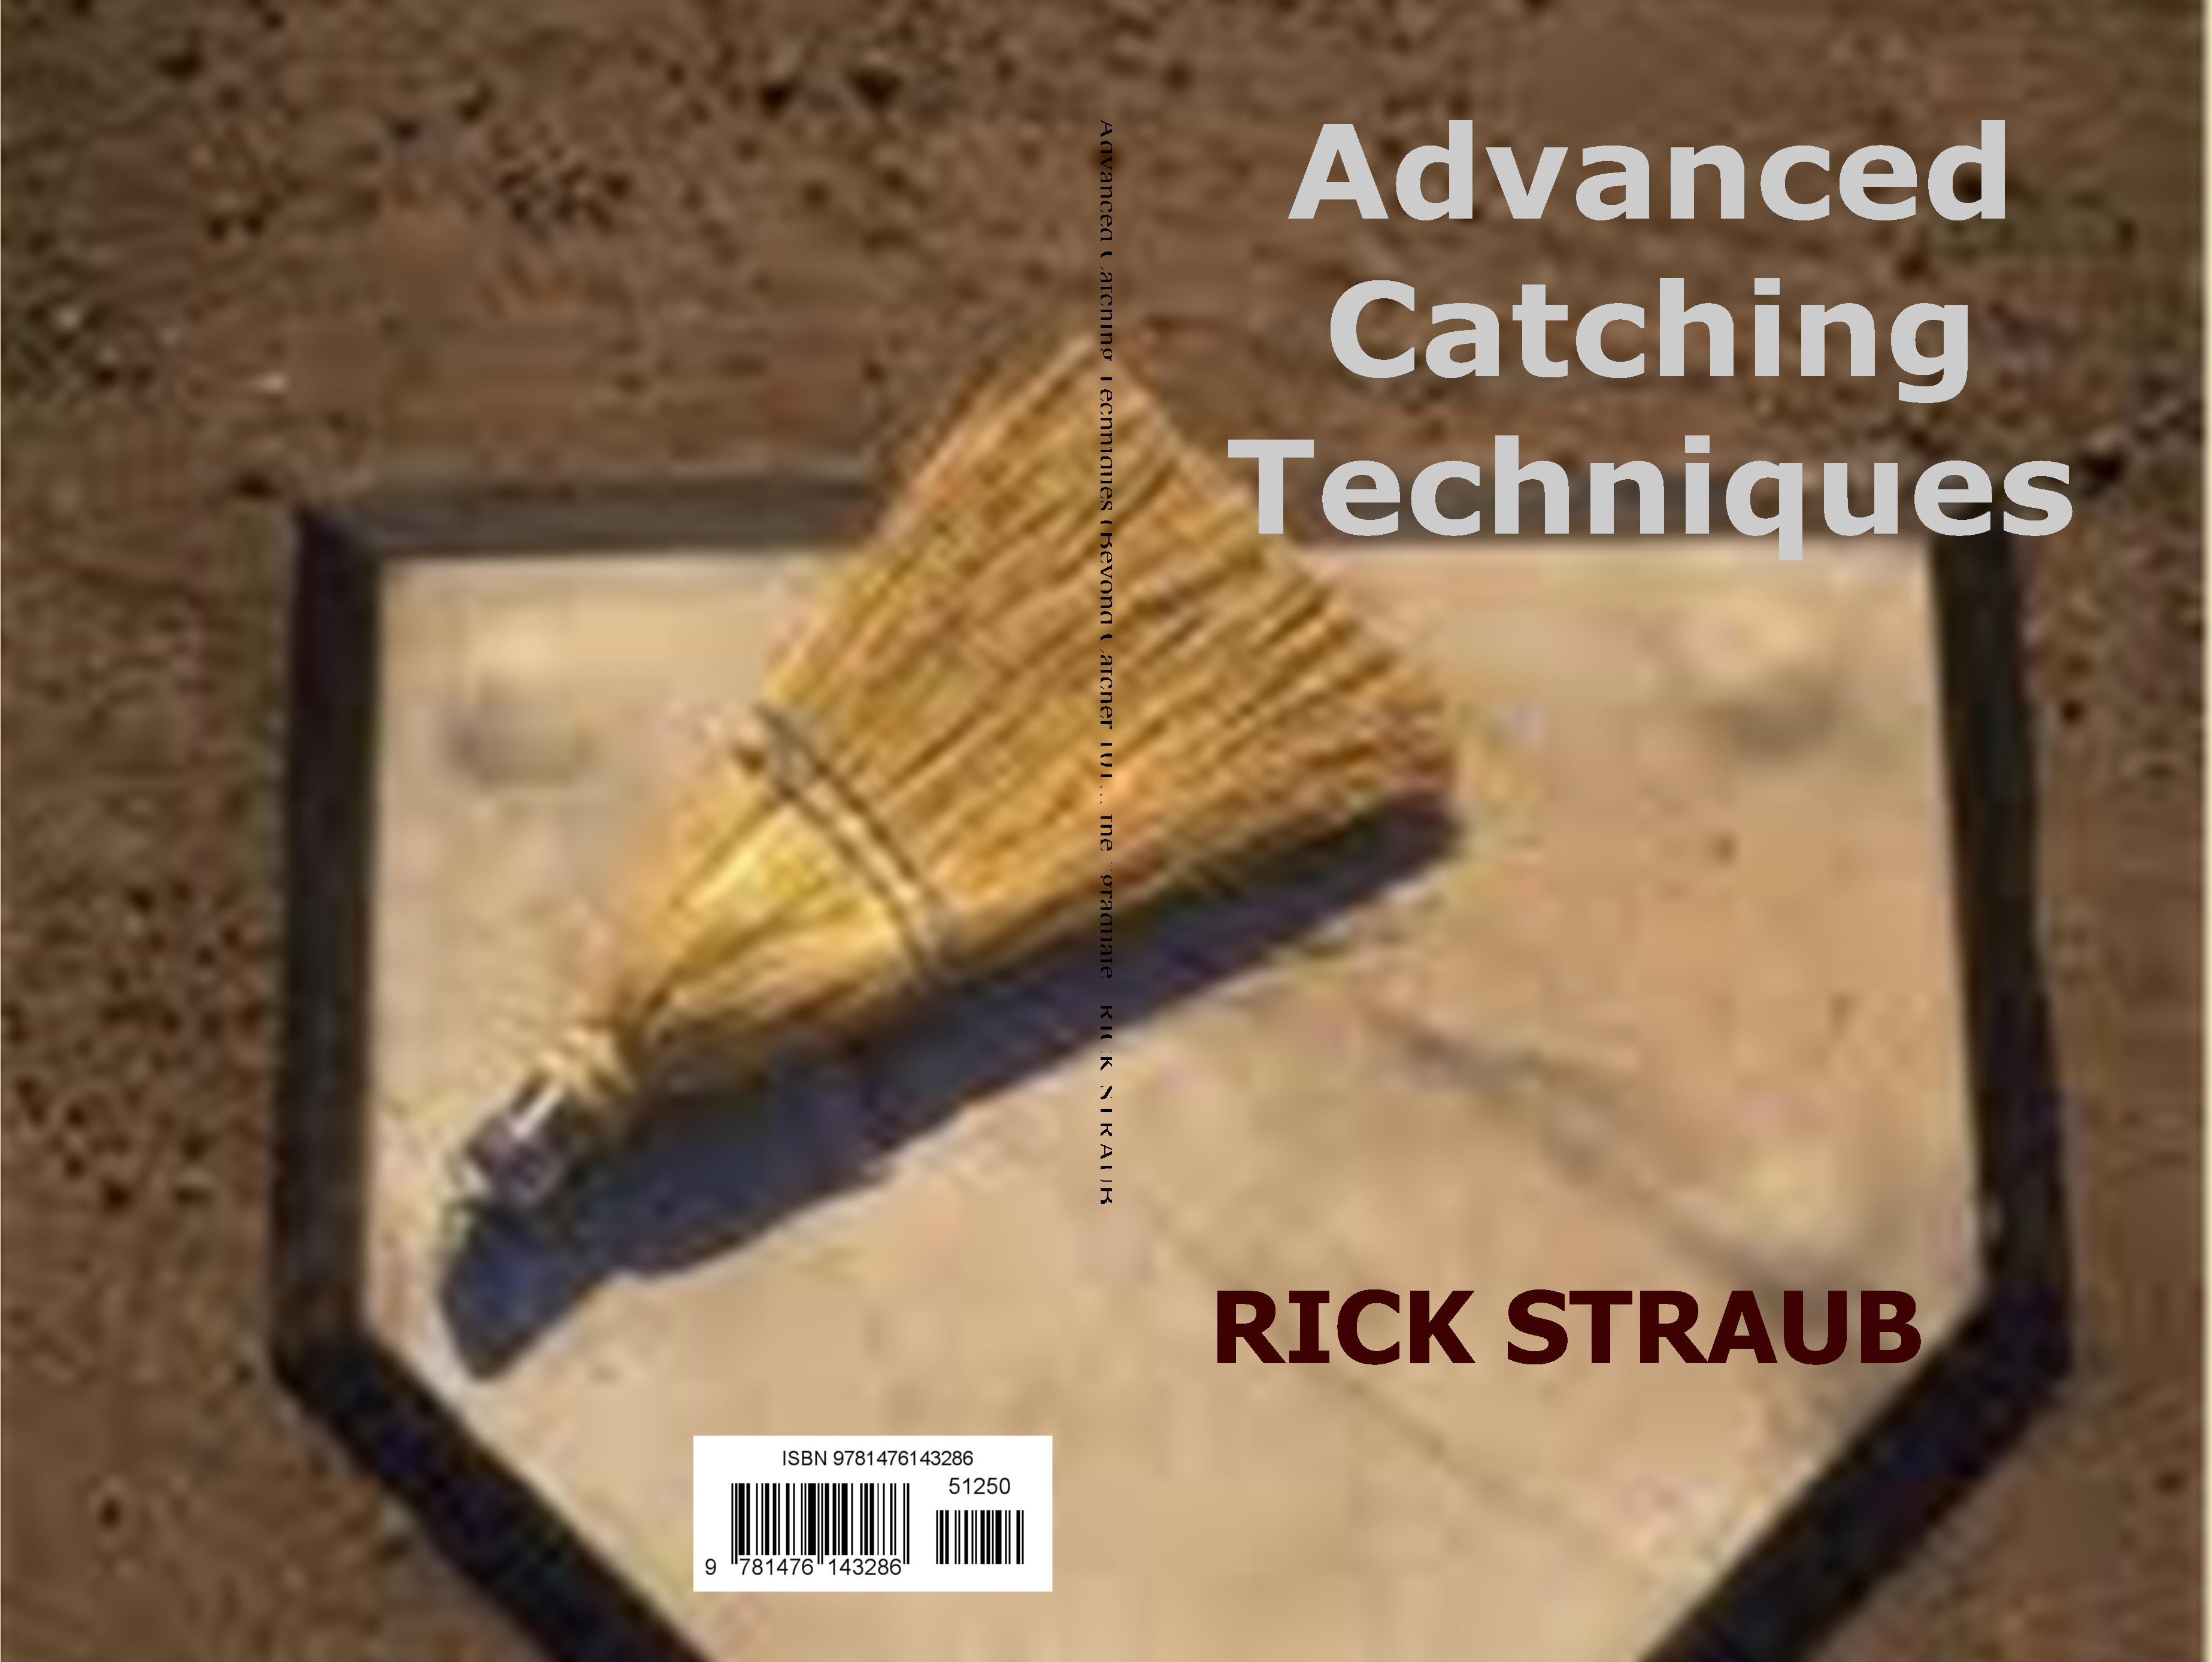 Advanced Catching Techniques cover image